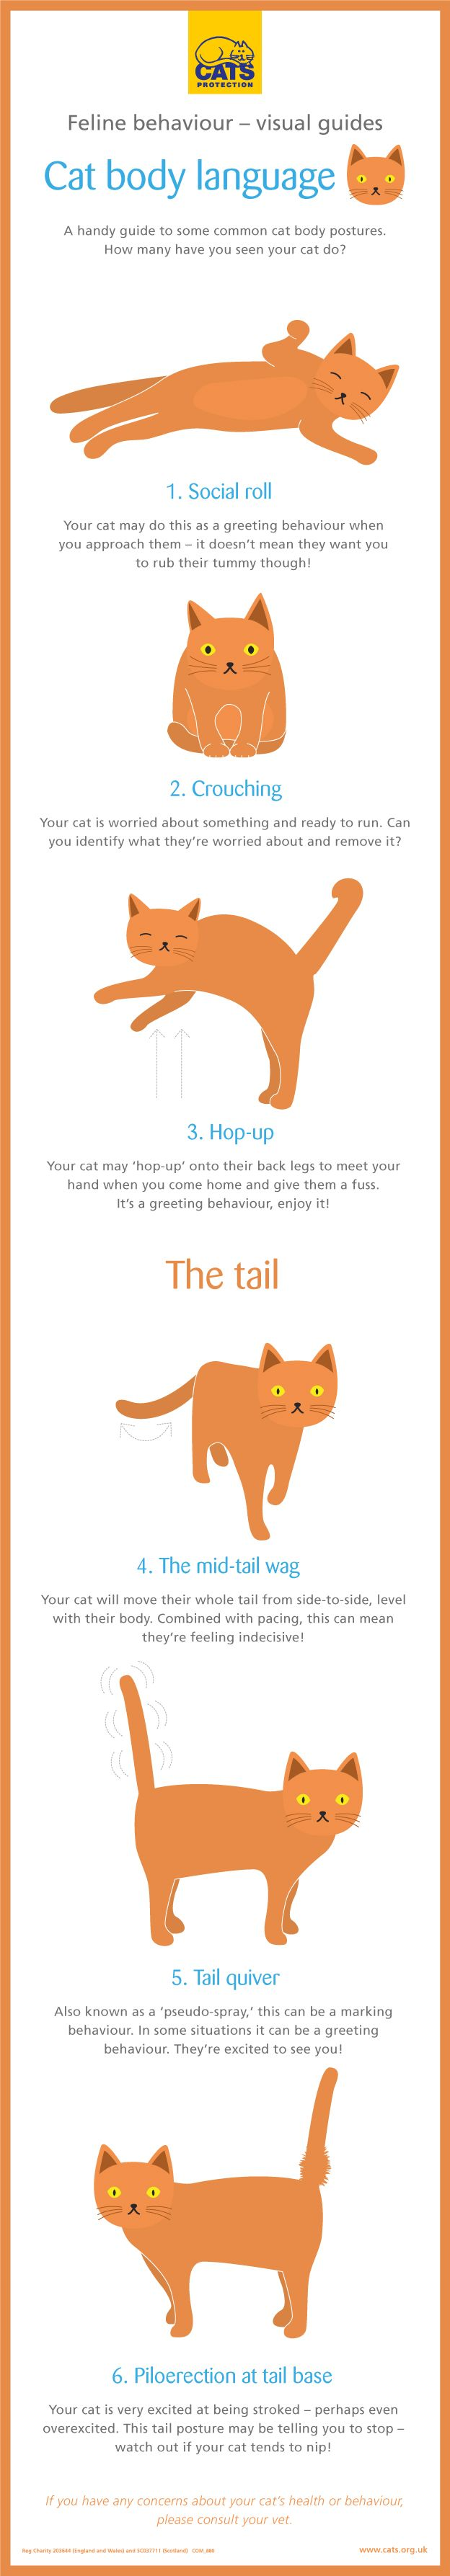 Feline behaviour explained – cat body language. How many of these have you seen your cat do?